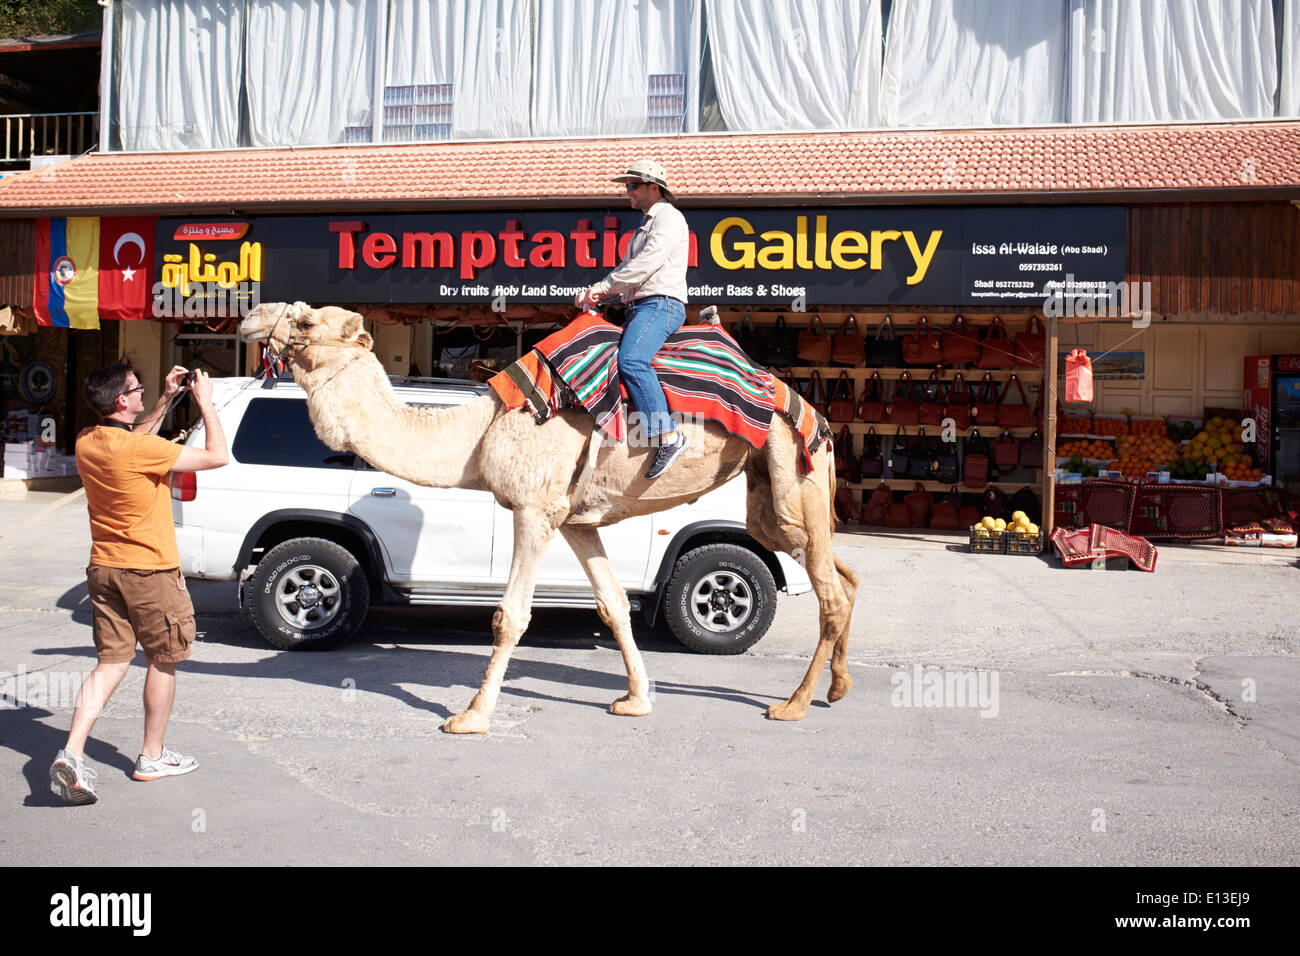 Tourist on camel in Jericho, West Bank, Palestine near The Mountain of Temptation - Stock Image